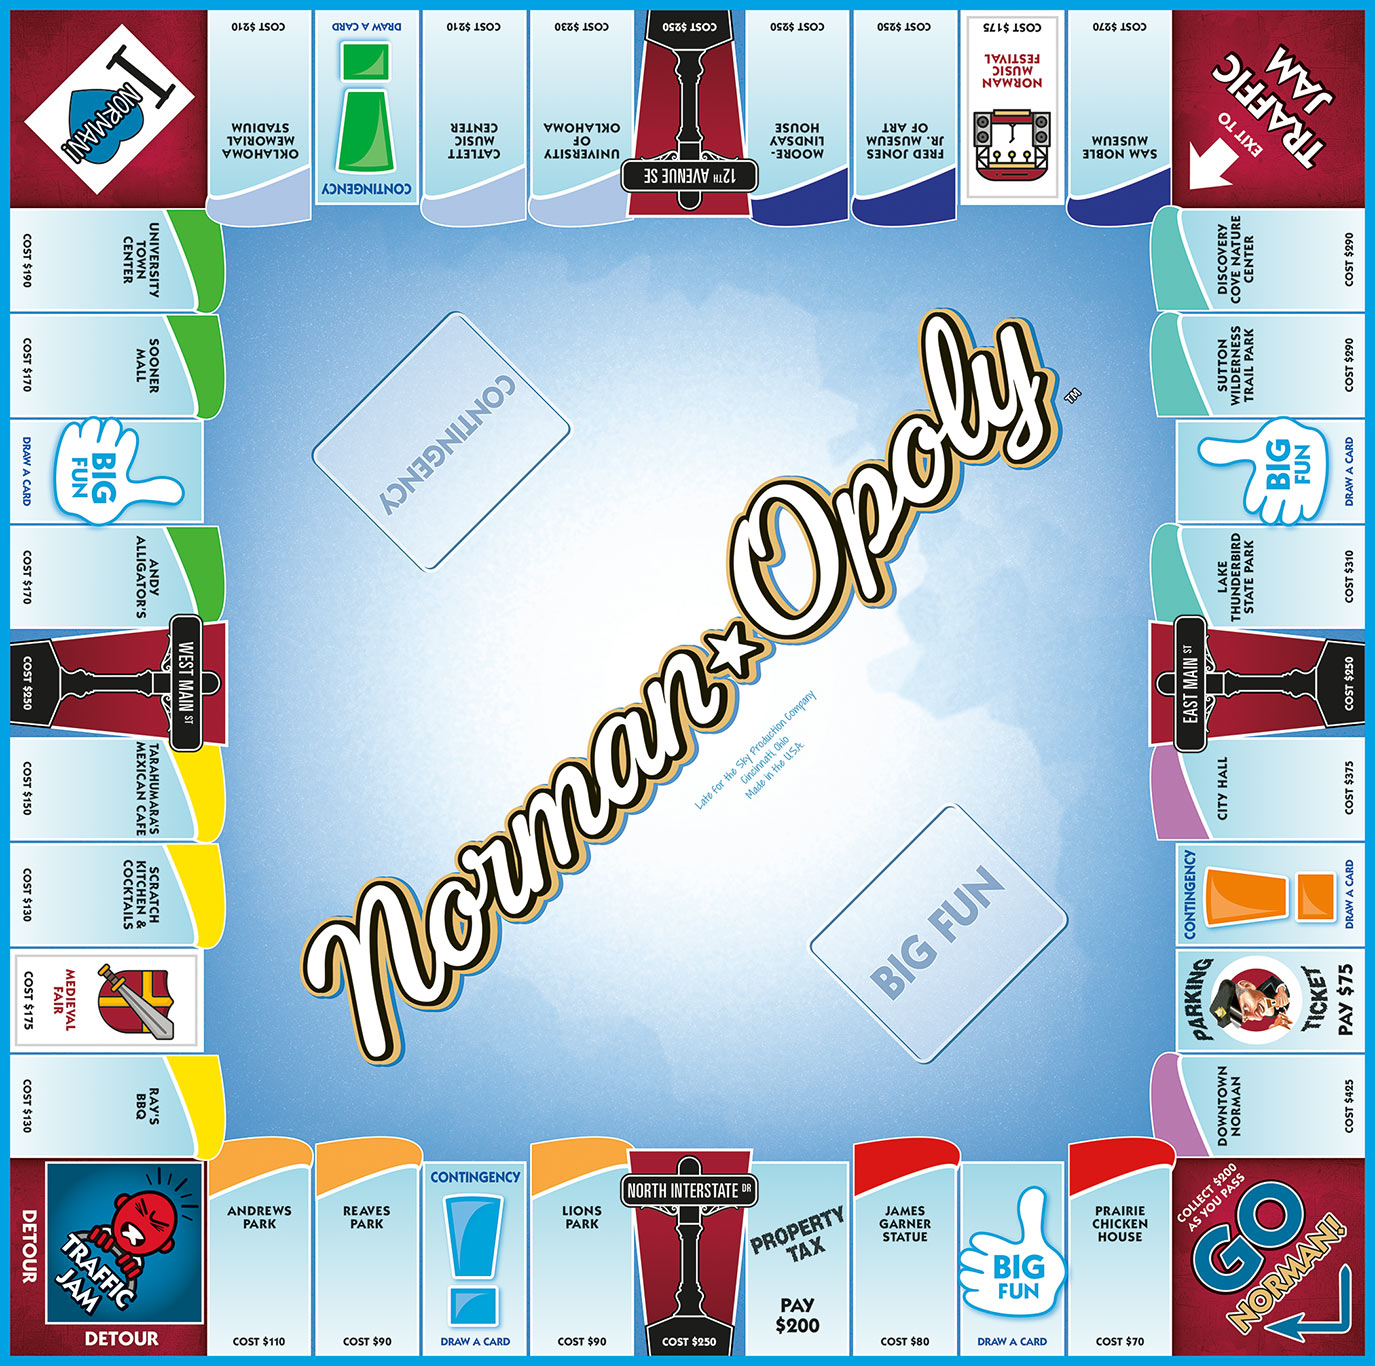 NORMAN-OPOLY Board Game